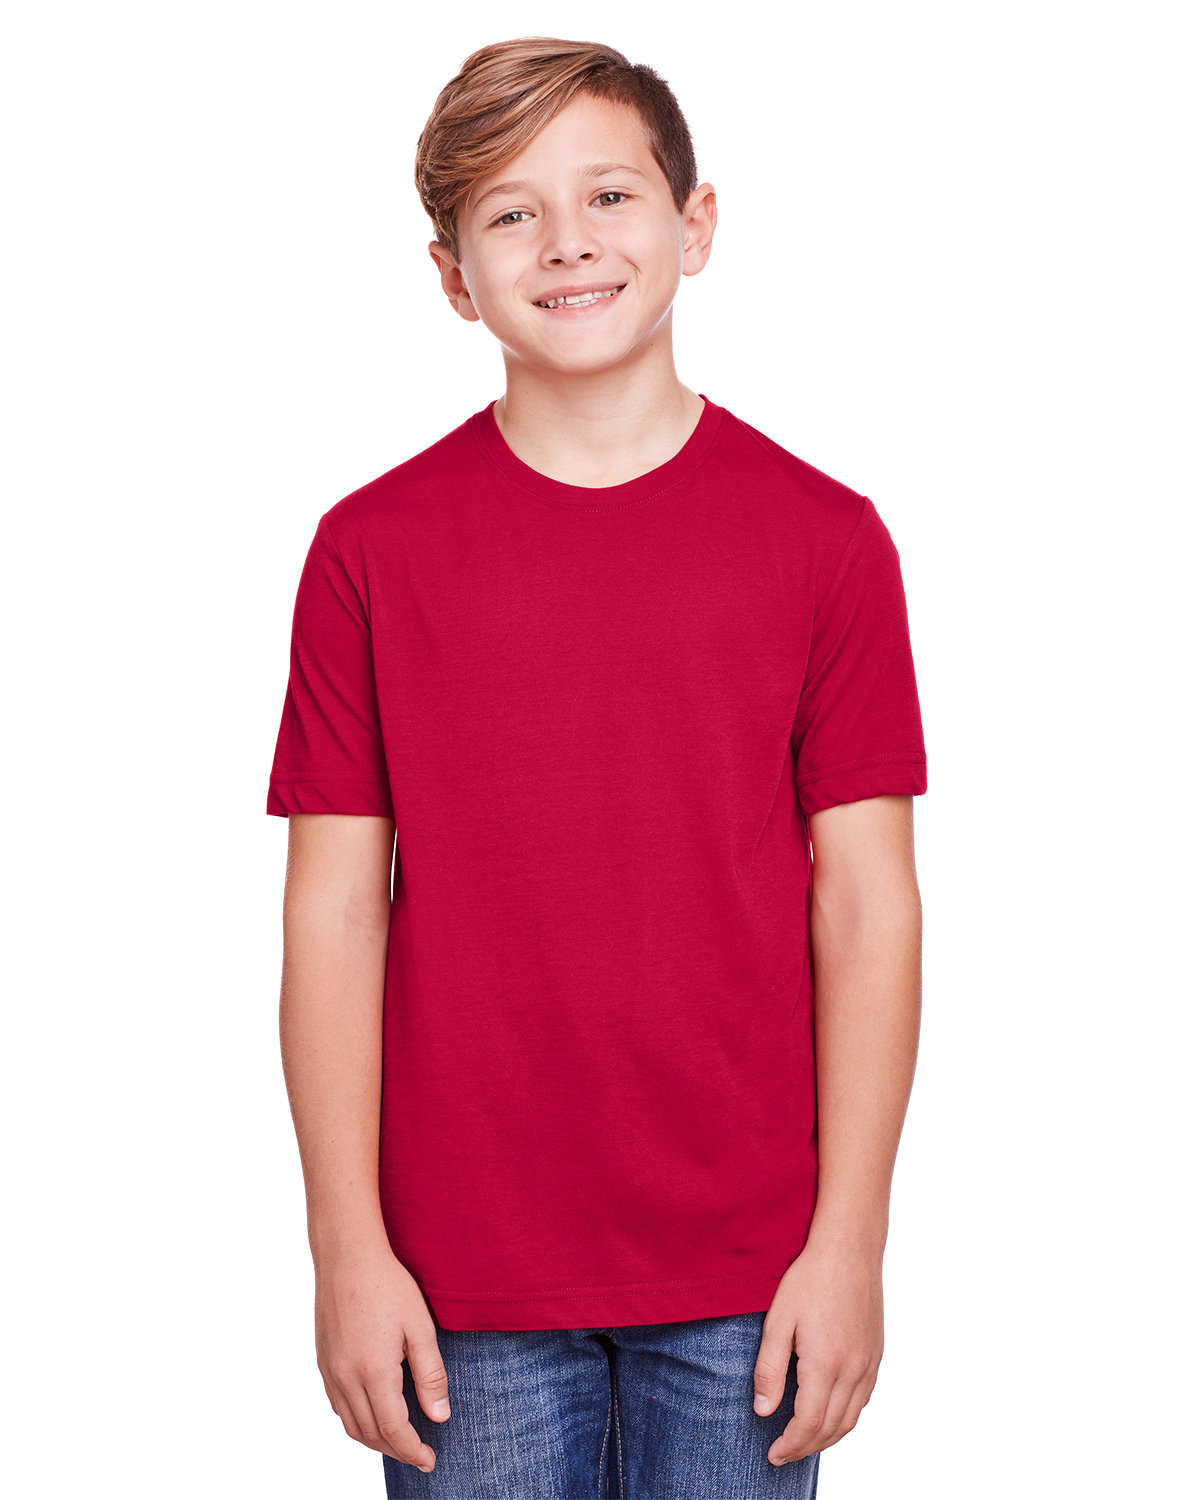 Core 365 Youth Fusion ChromaSoft Performance T-Shirt CLASSIC RED